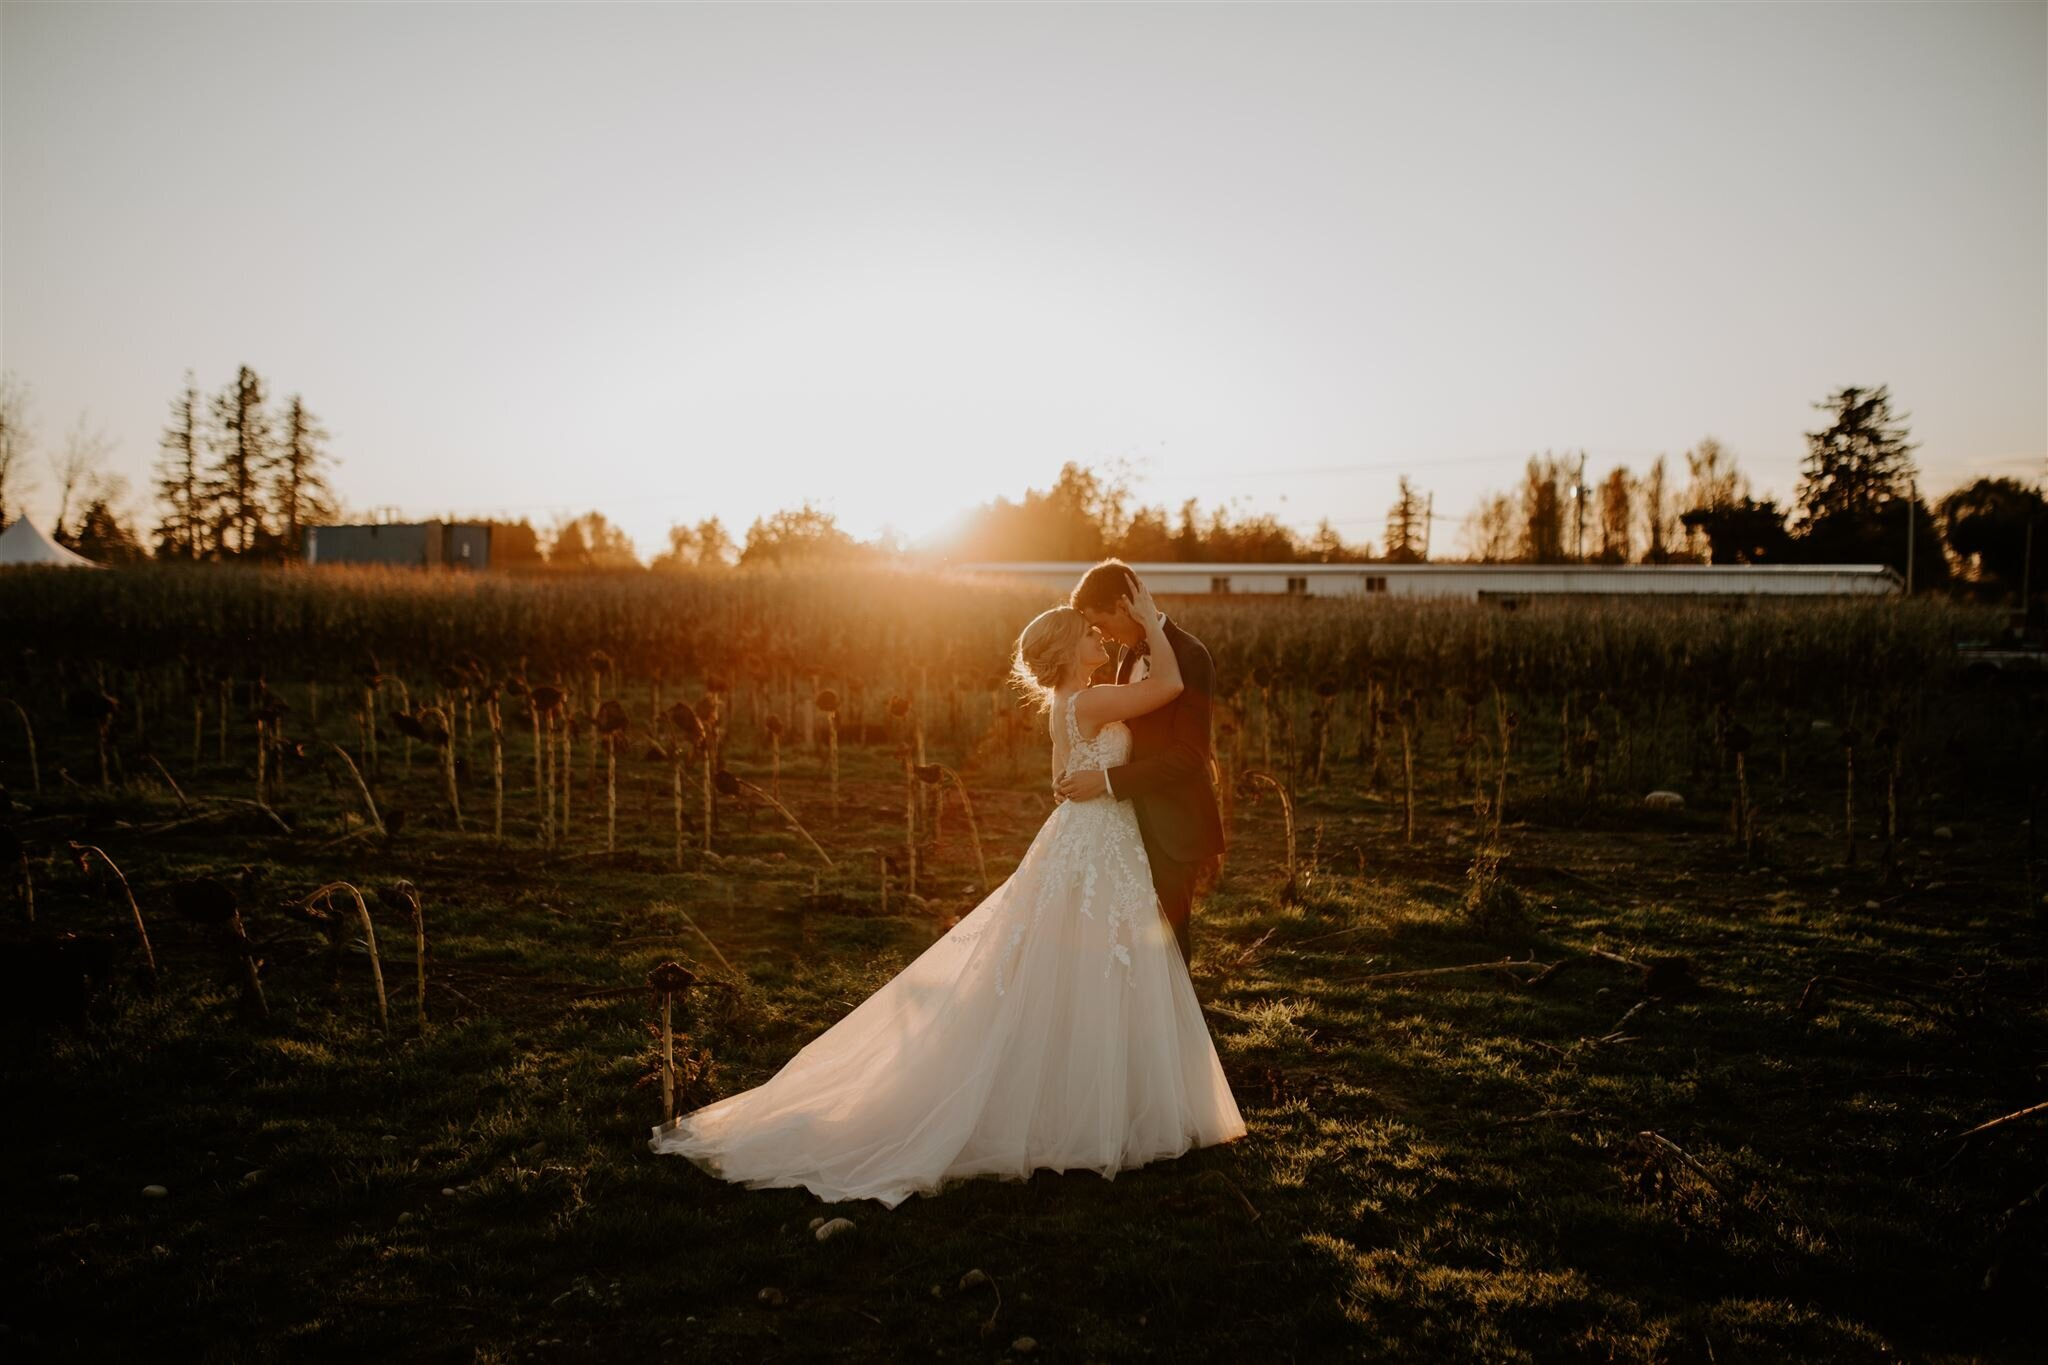 ashley+alex-maan-farms-mirandandersonphoto-120_websize